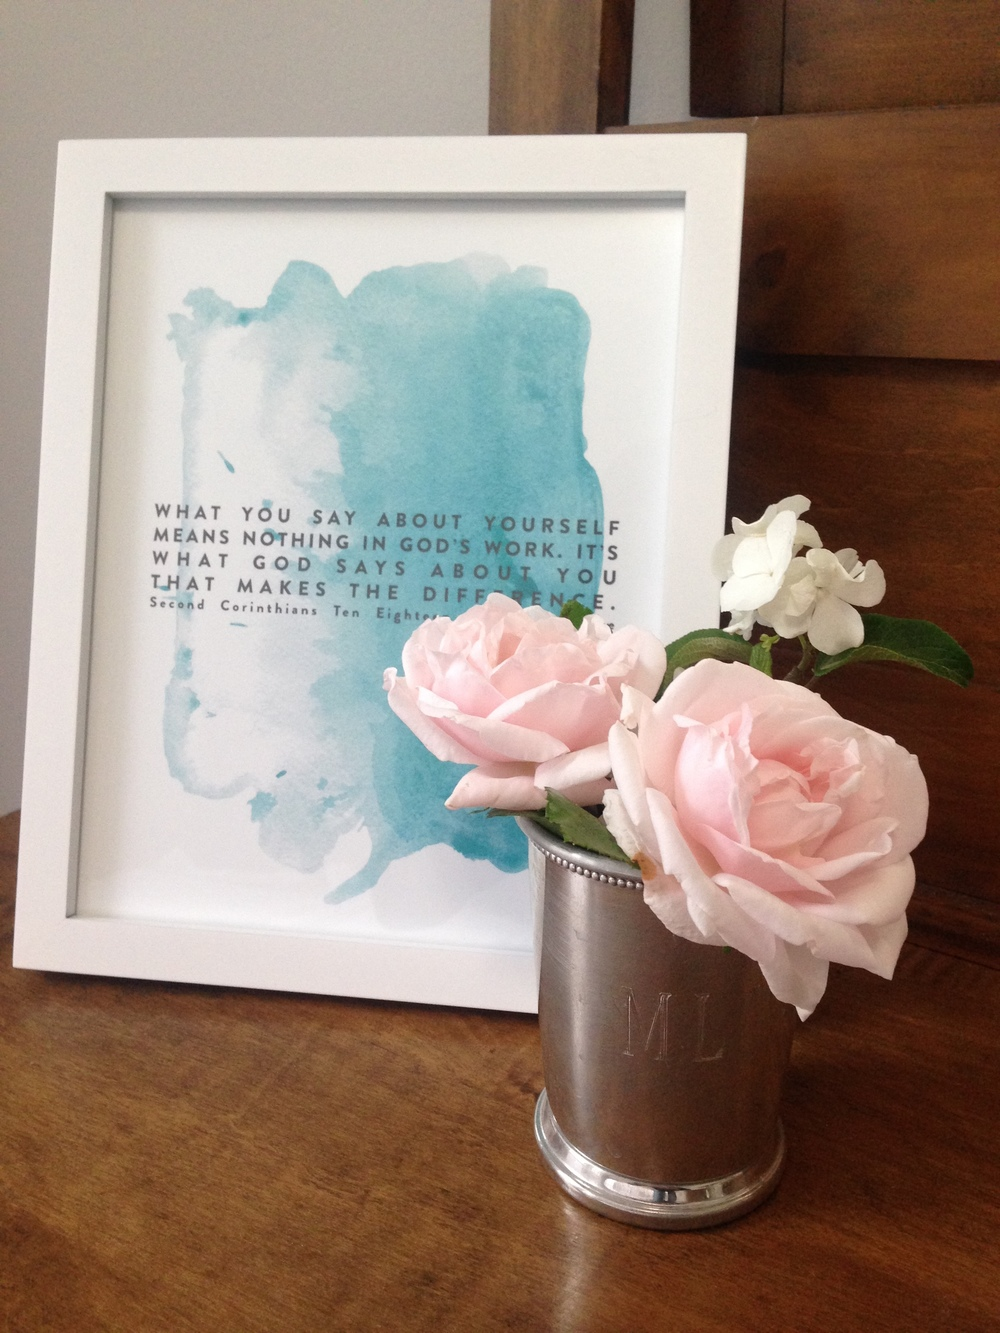 We want our guests to feel so loved when they stay in our home. One of the ways we accomplish this in our guest room is by putting fresh flowers from our garden and positive words to encourage them! (Print by Naptime Diaries)